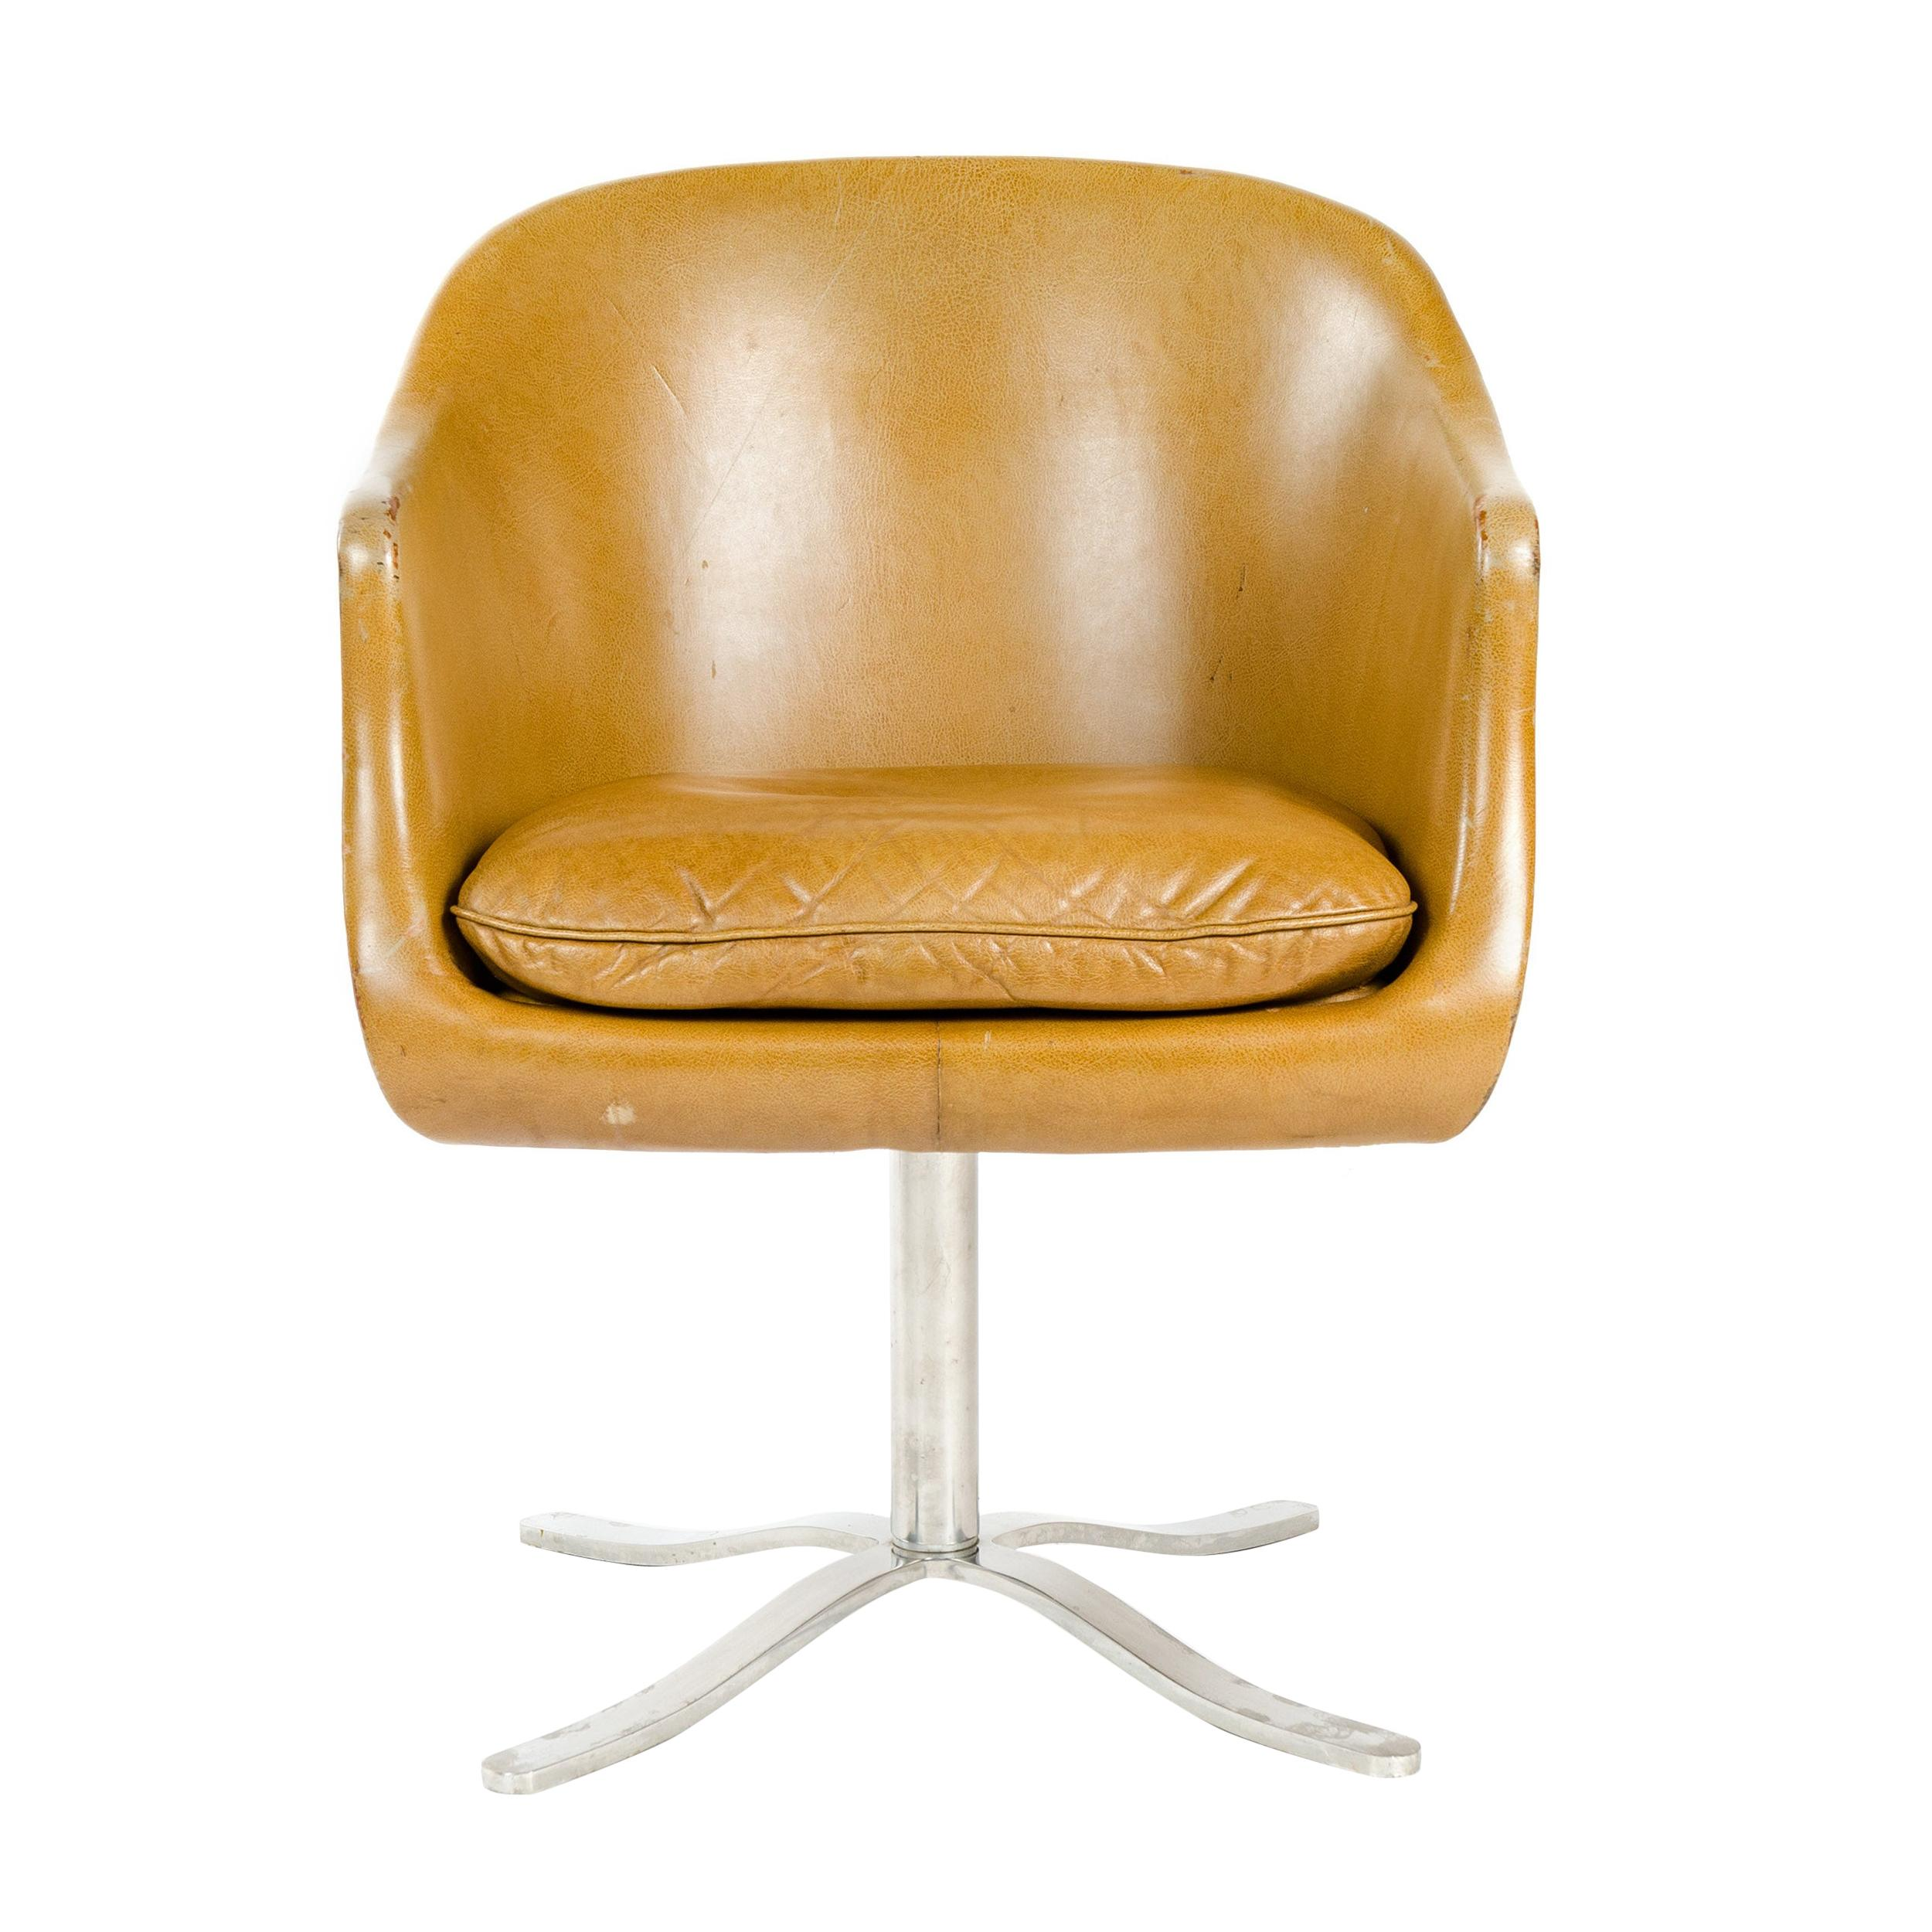 1960s Leather Swivel Desk Chair by Nicos Zographos